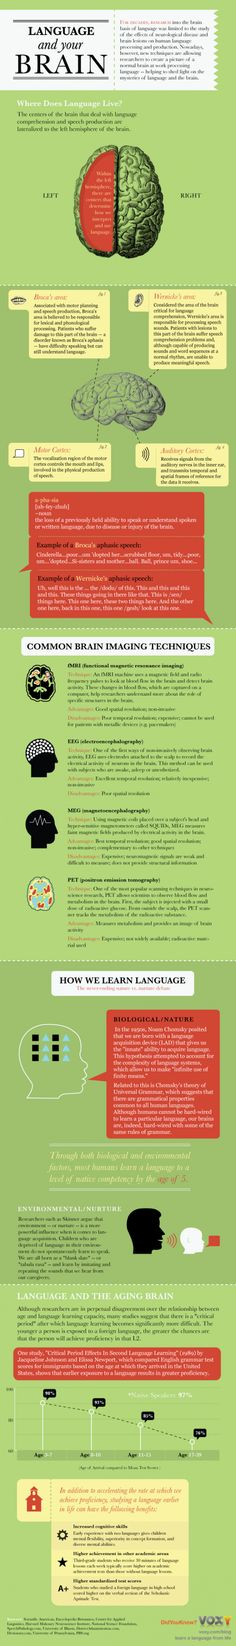 Richard Yates I have a brain injury mines Anoxic brain injury ;Infographic: Language and Your Brain - explains aphasia that can occur from a stroke or other brain injury Speech Pathology, Speech Language Pathology, Speech And Language, Speech Therapy, Learning Tips, Mobile Learning, Aphasia, Dyslexia, Mental Training